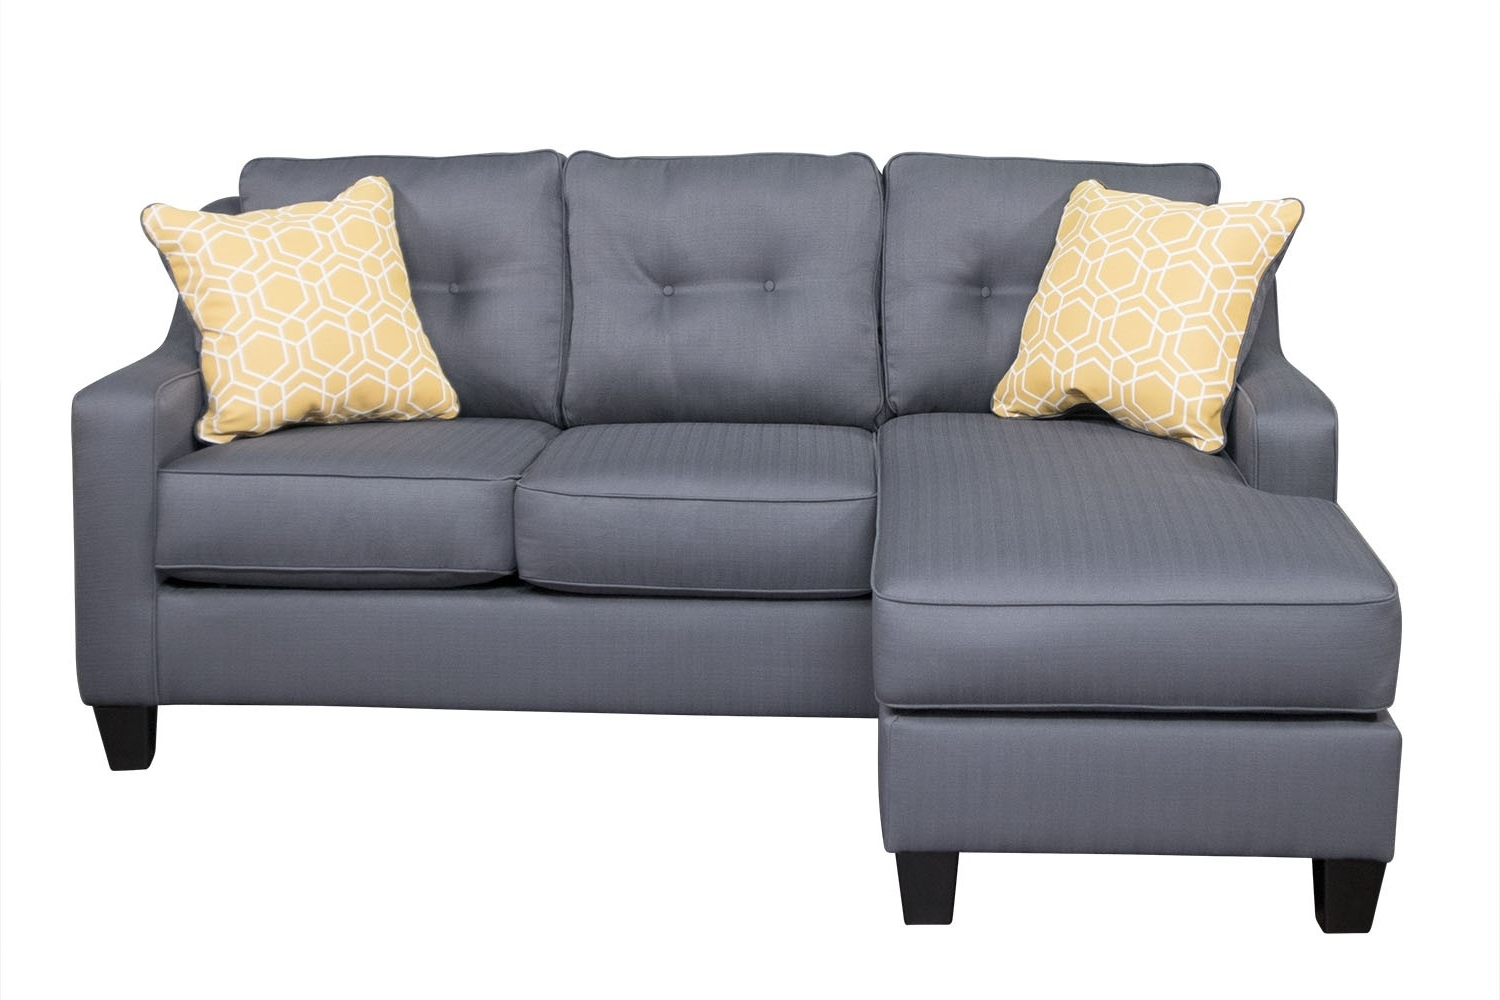 Mor Furniture For Less (View 12 of 15)